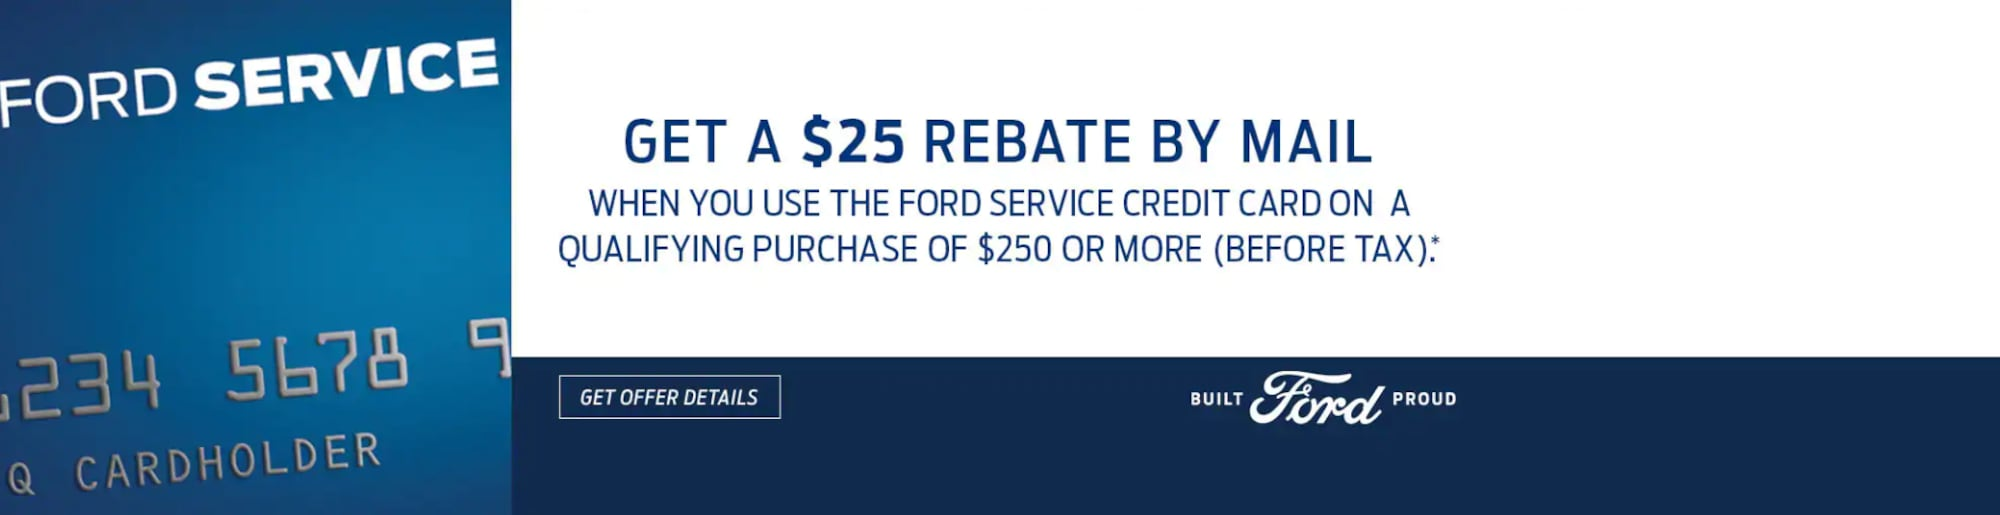 Ford Service Palm Bay Ford Dealership Palm Bay Florida >> Paradise Ford Ford Dealership In Cocoa Fl